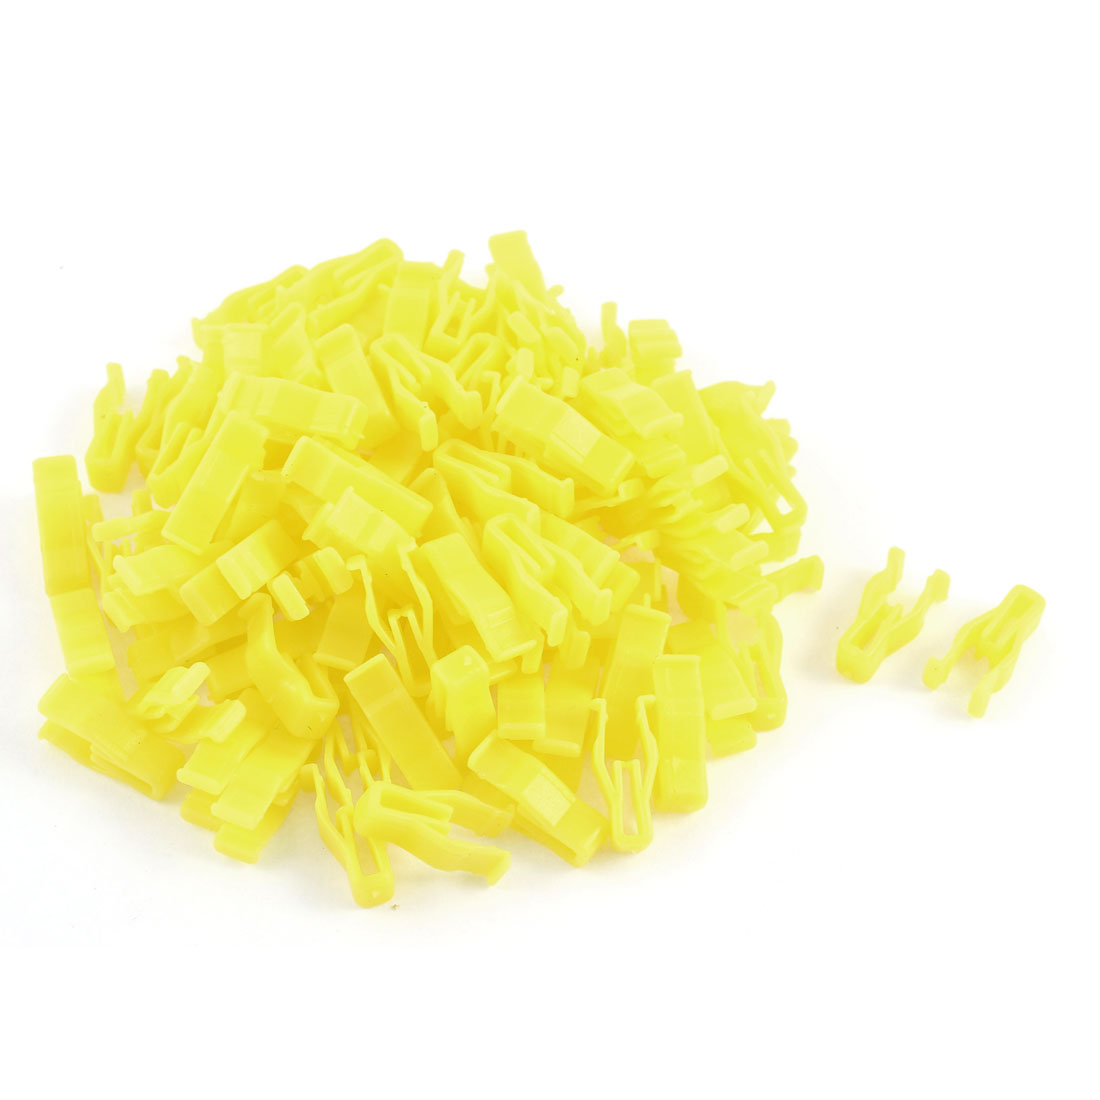 100 Pcs Yellow Plastic Rivet Trim Fastener Retainer Clips for 5mm Hole